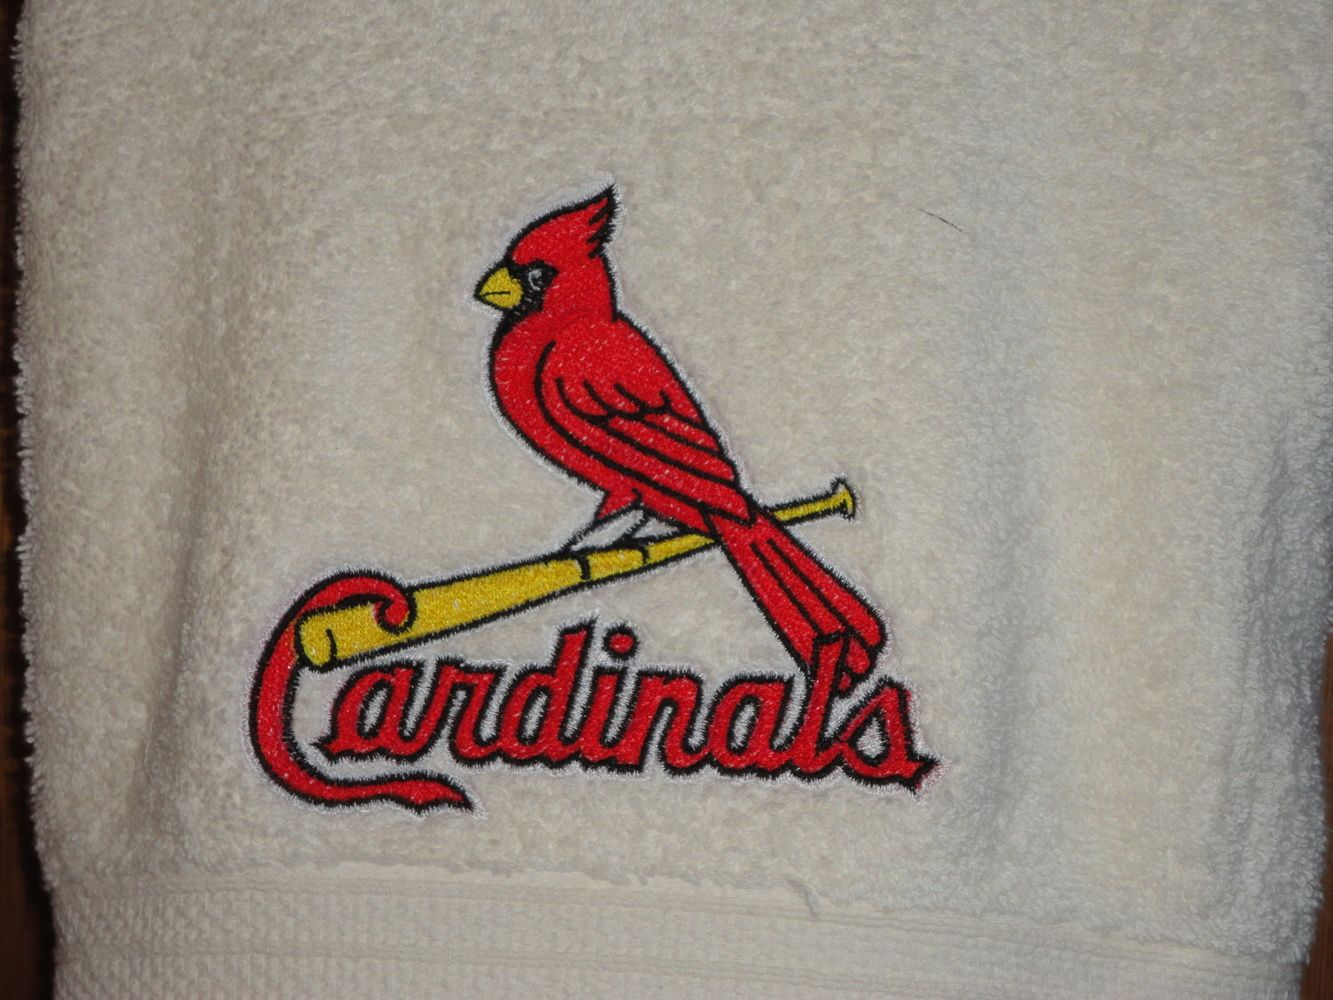 St Louis Cardinals Logo Embroidery Design Embroidered Towels